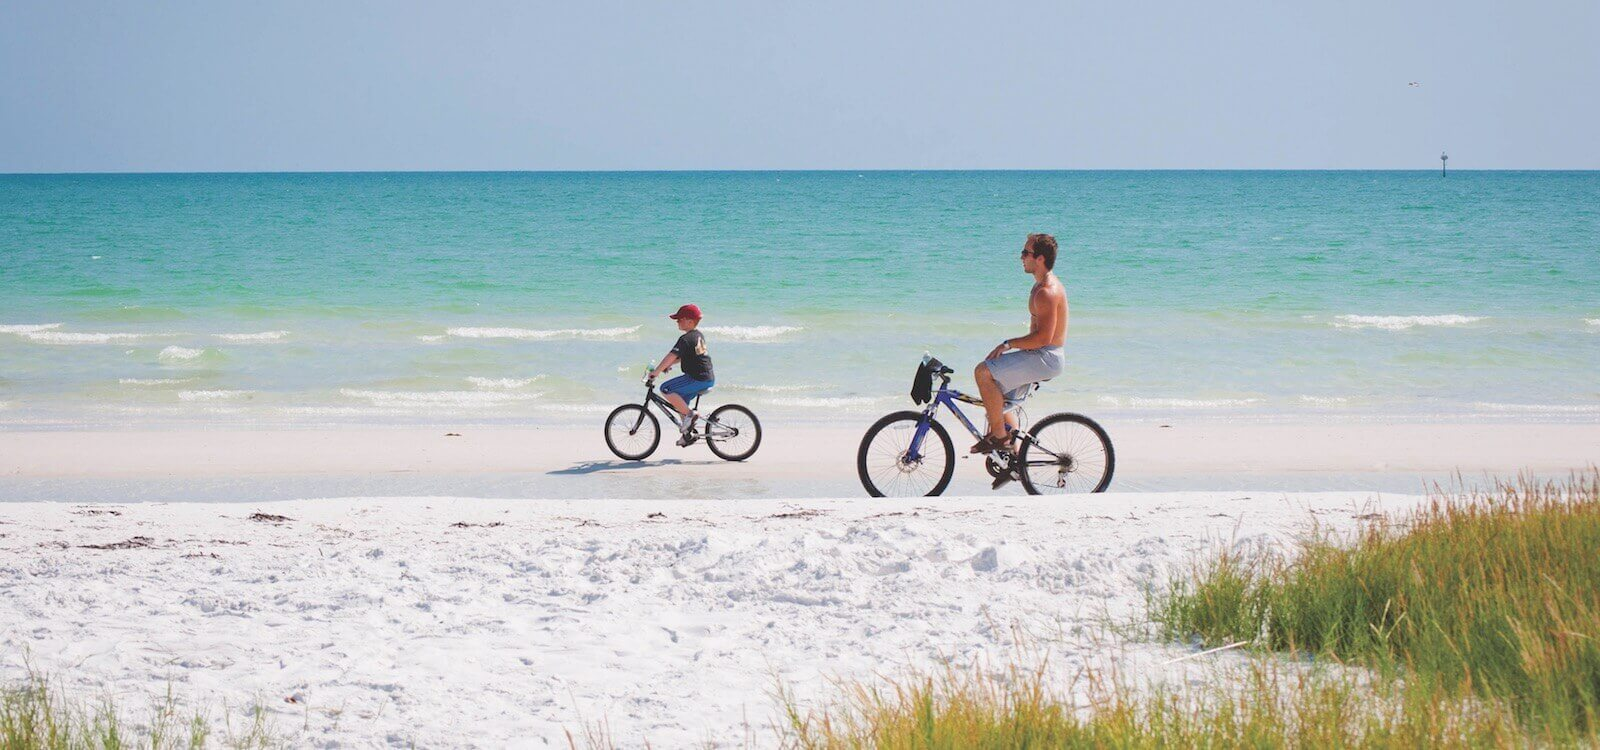 Kids, activity, bicycling, Siesta Beach, Sarasota, Florida, USA. Photo by Debi Pittman Wilkey